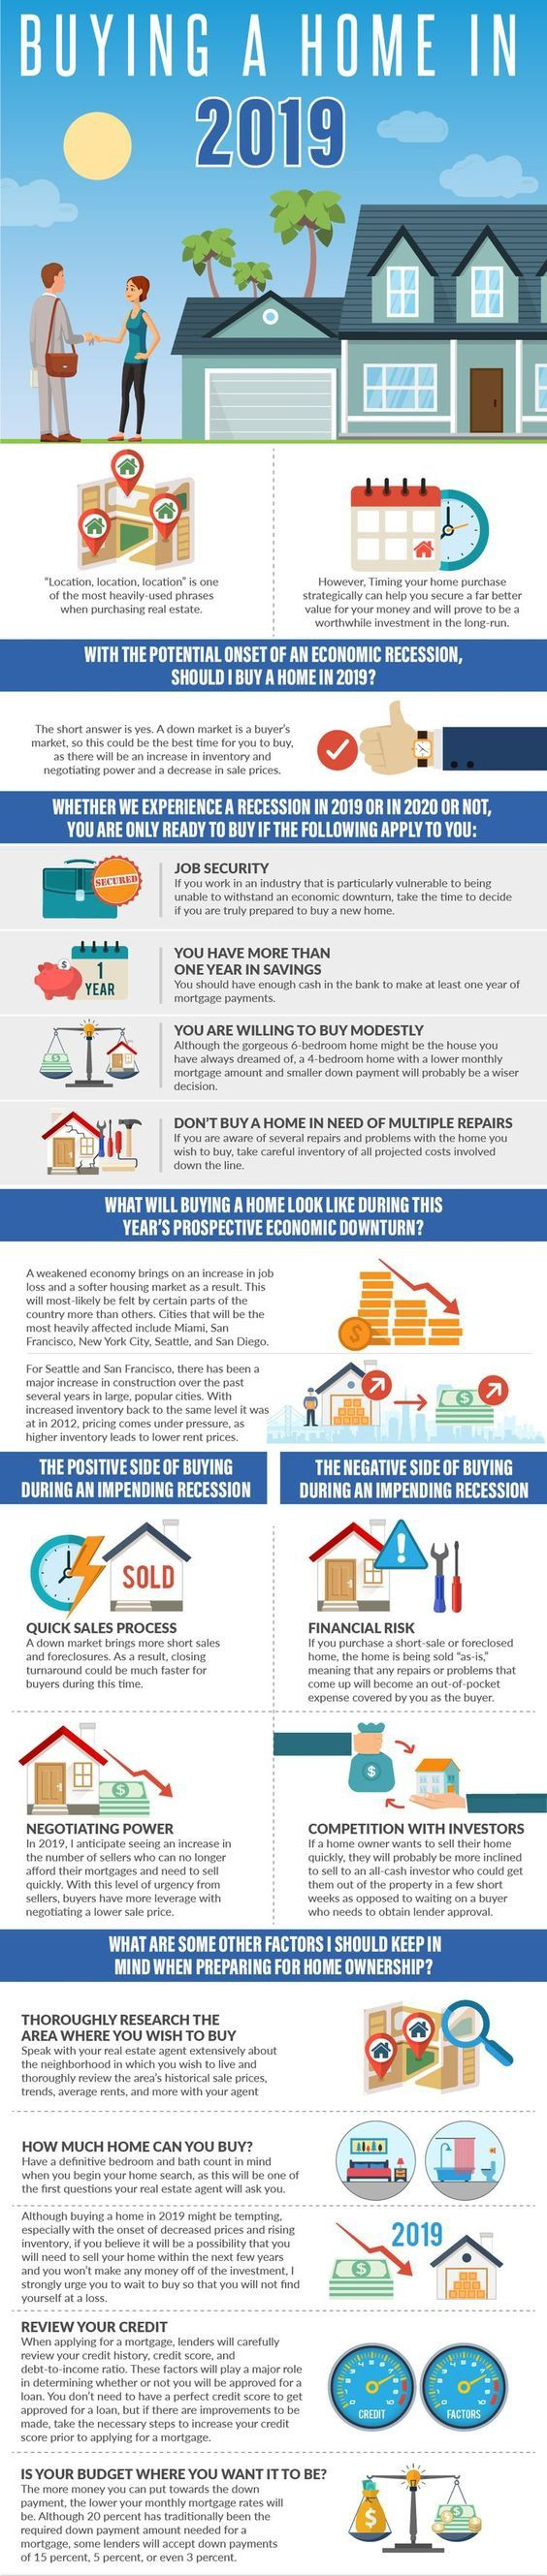 Buying A Home In 2019 Home Buying Real Estate Buying Real Estate Investing